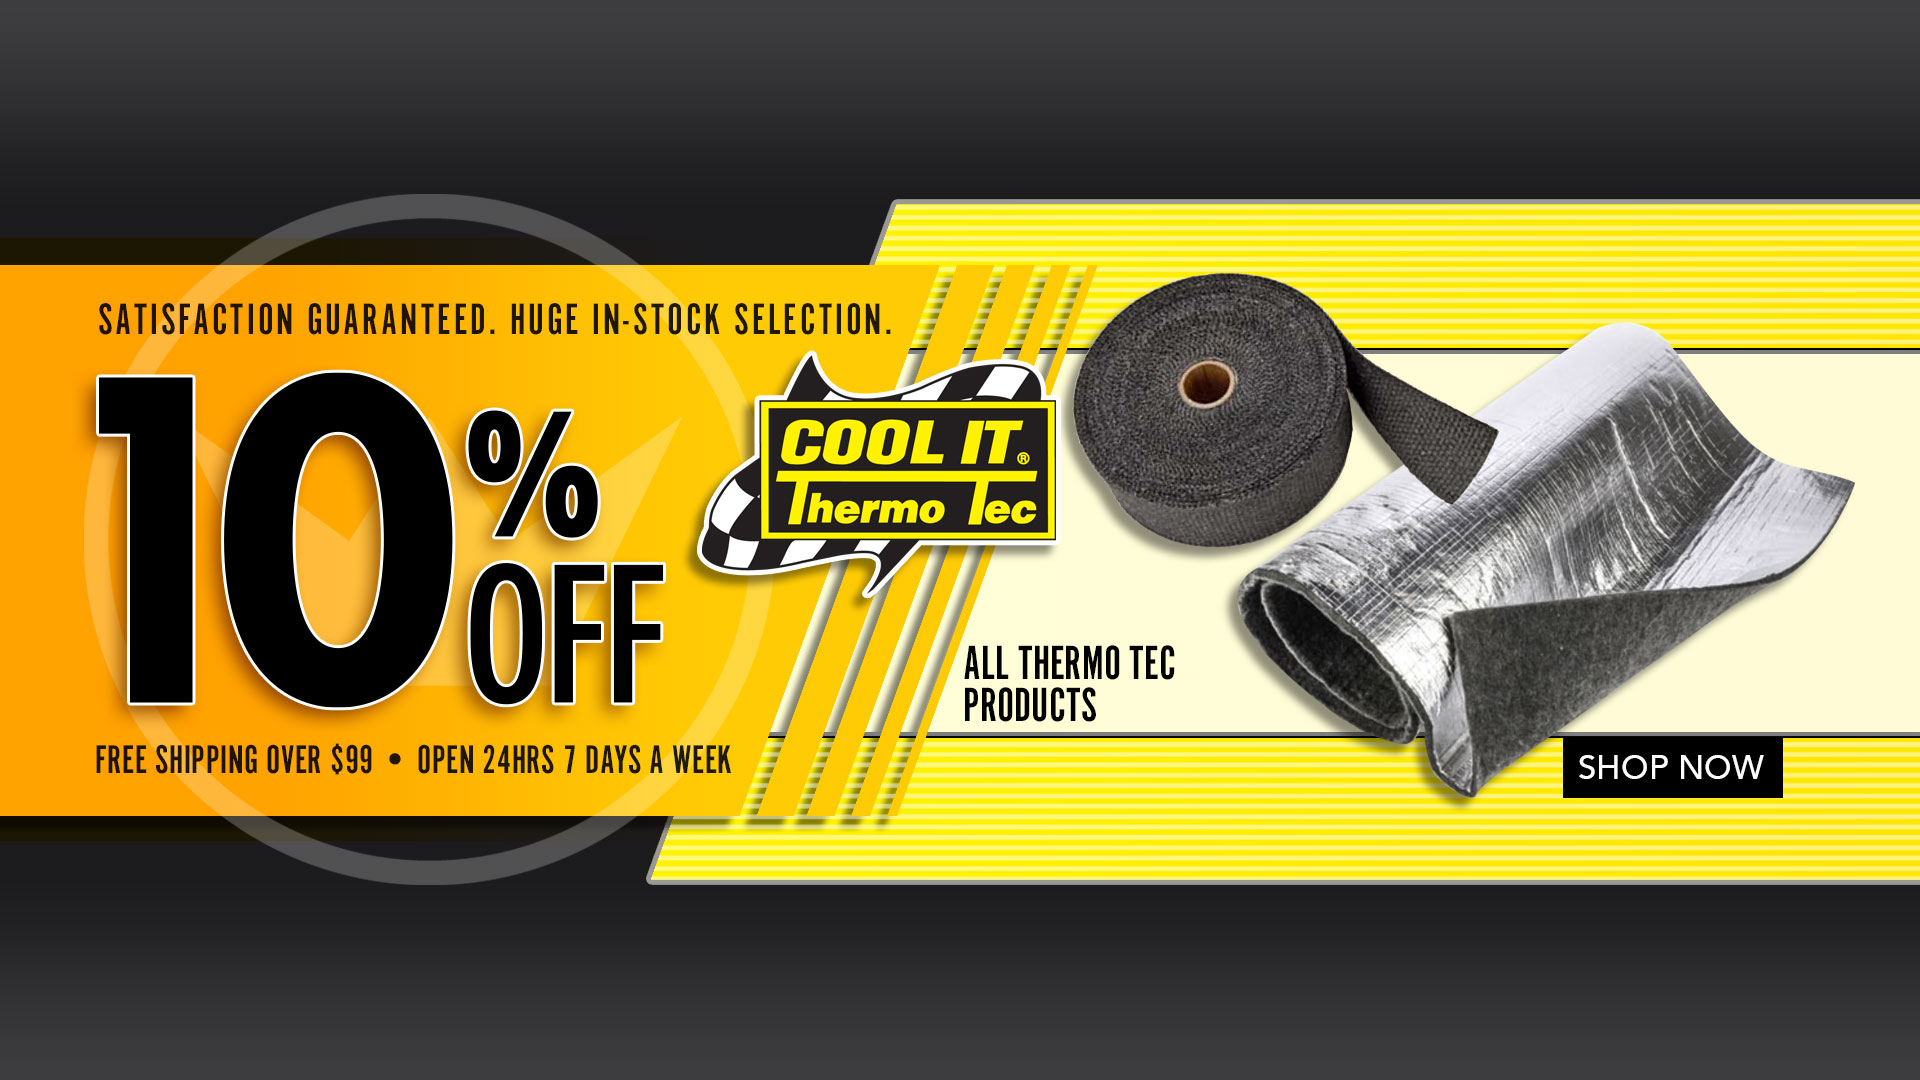 Save 10% off all Thermo Tec Products